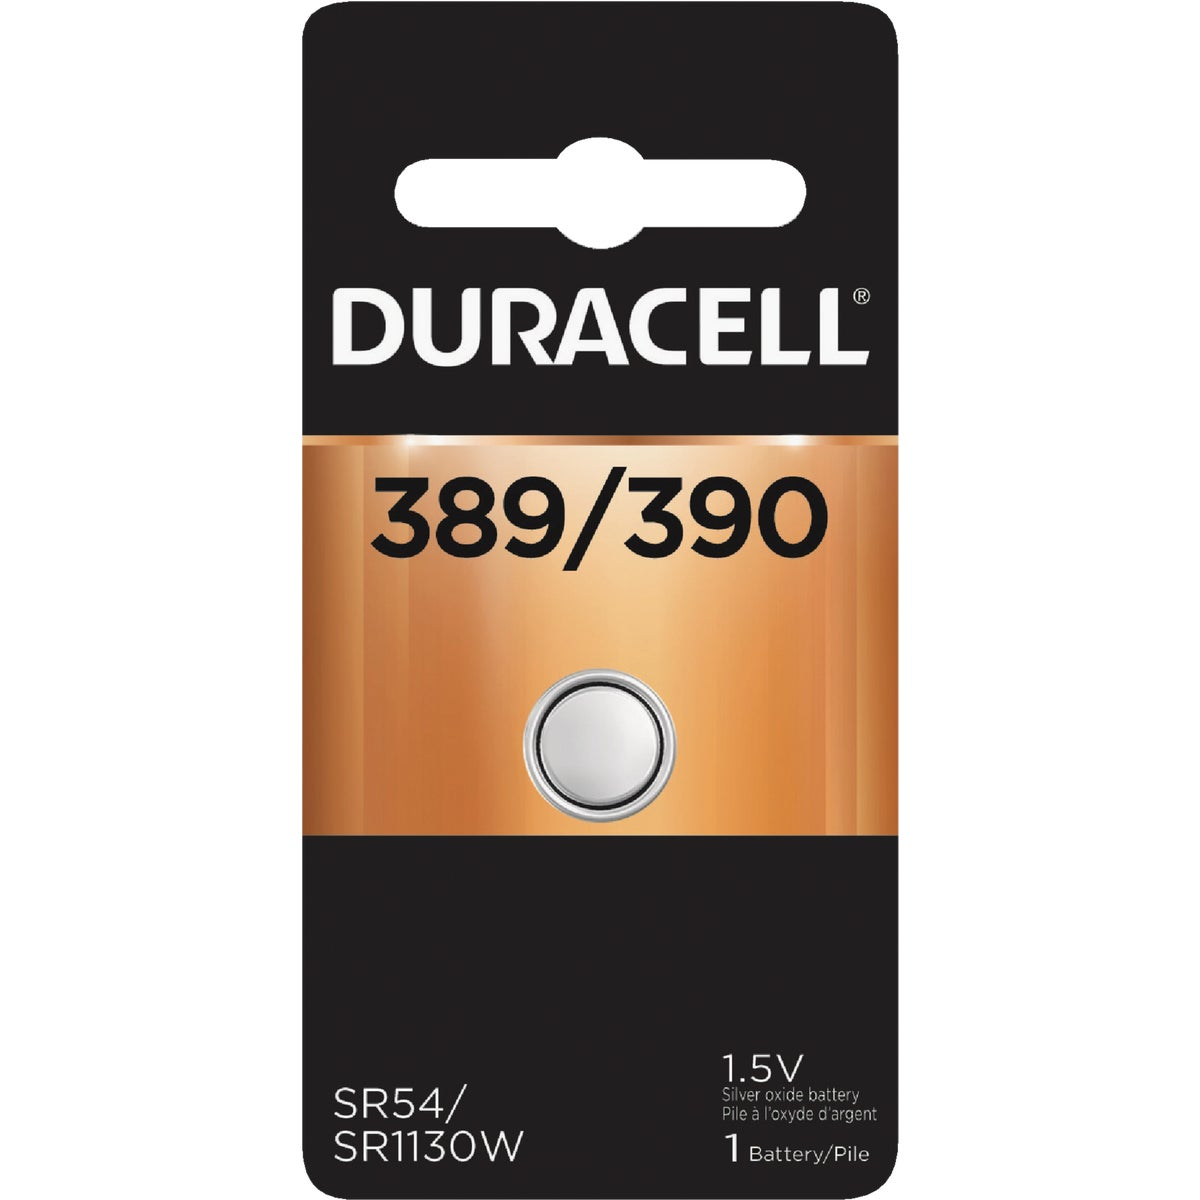 D389/390 1.5V WA BATTERY - 42487 by P & G  Duracell